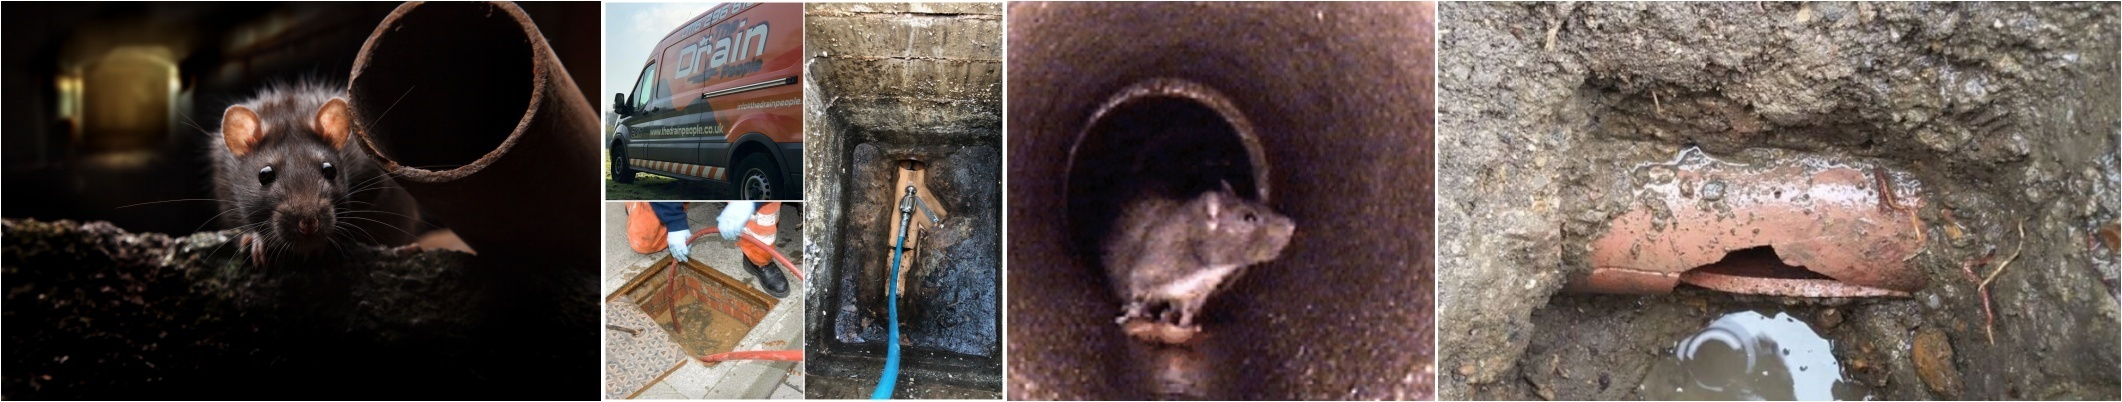 Rat Detection & Removal from Drains Leicester - by The Drain People